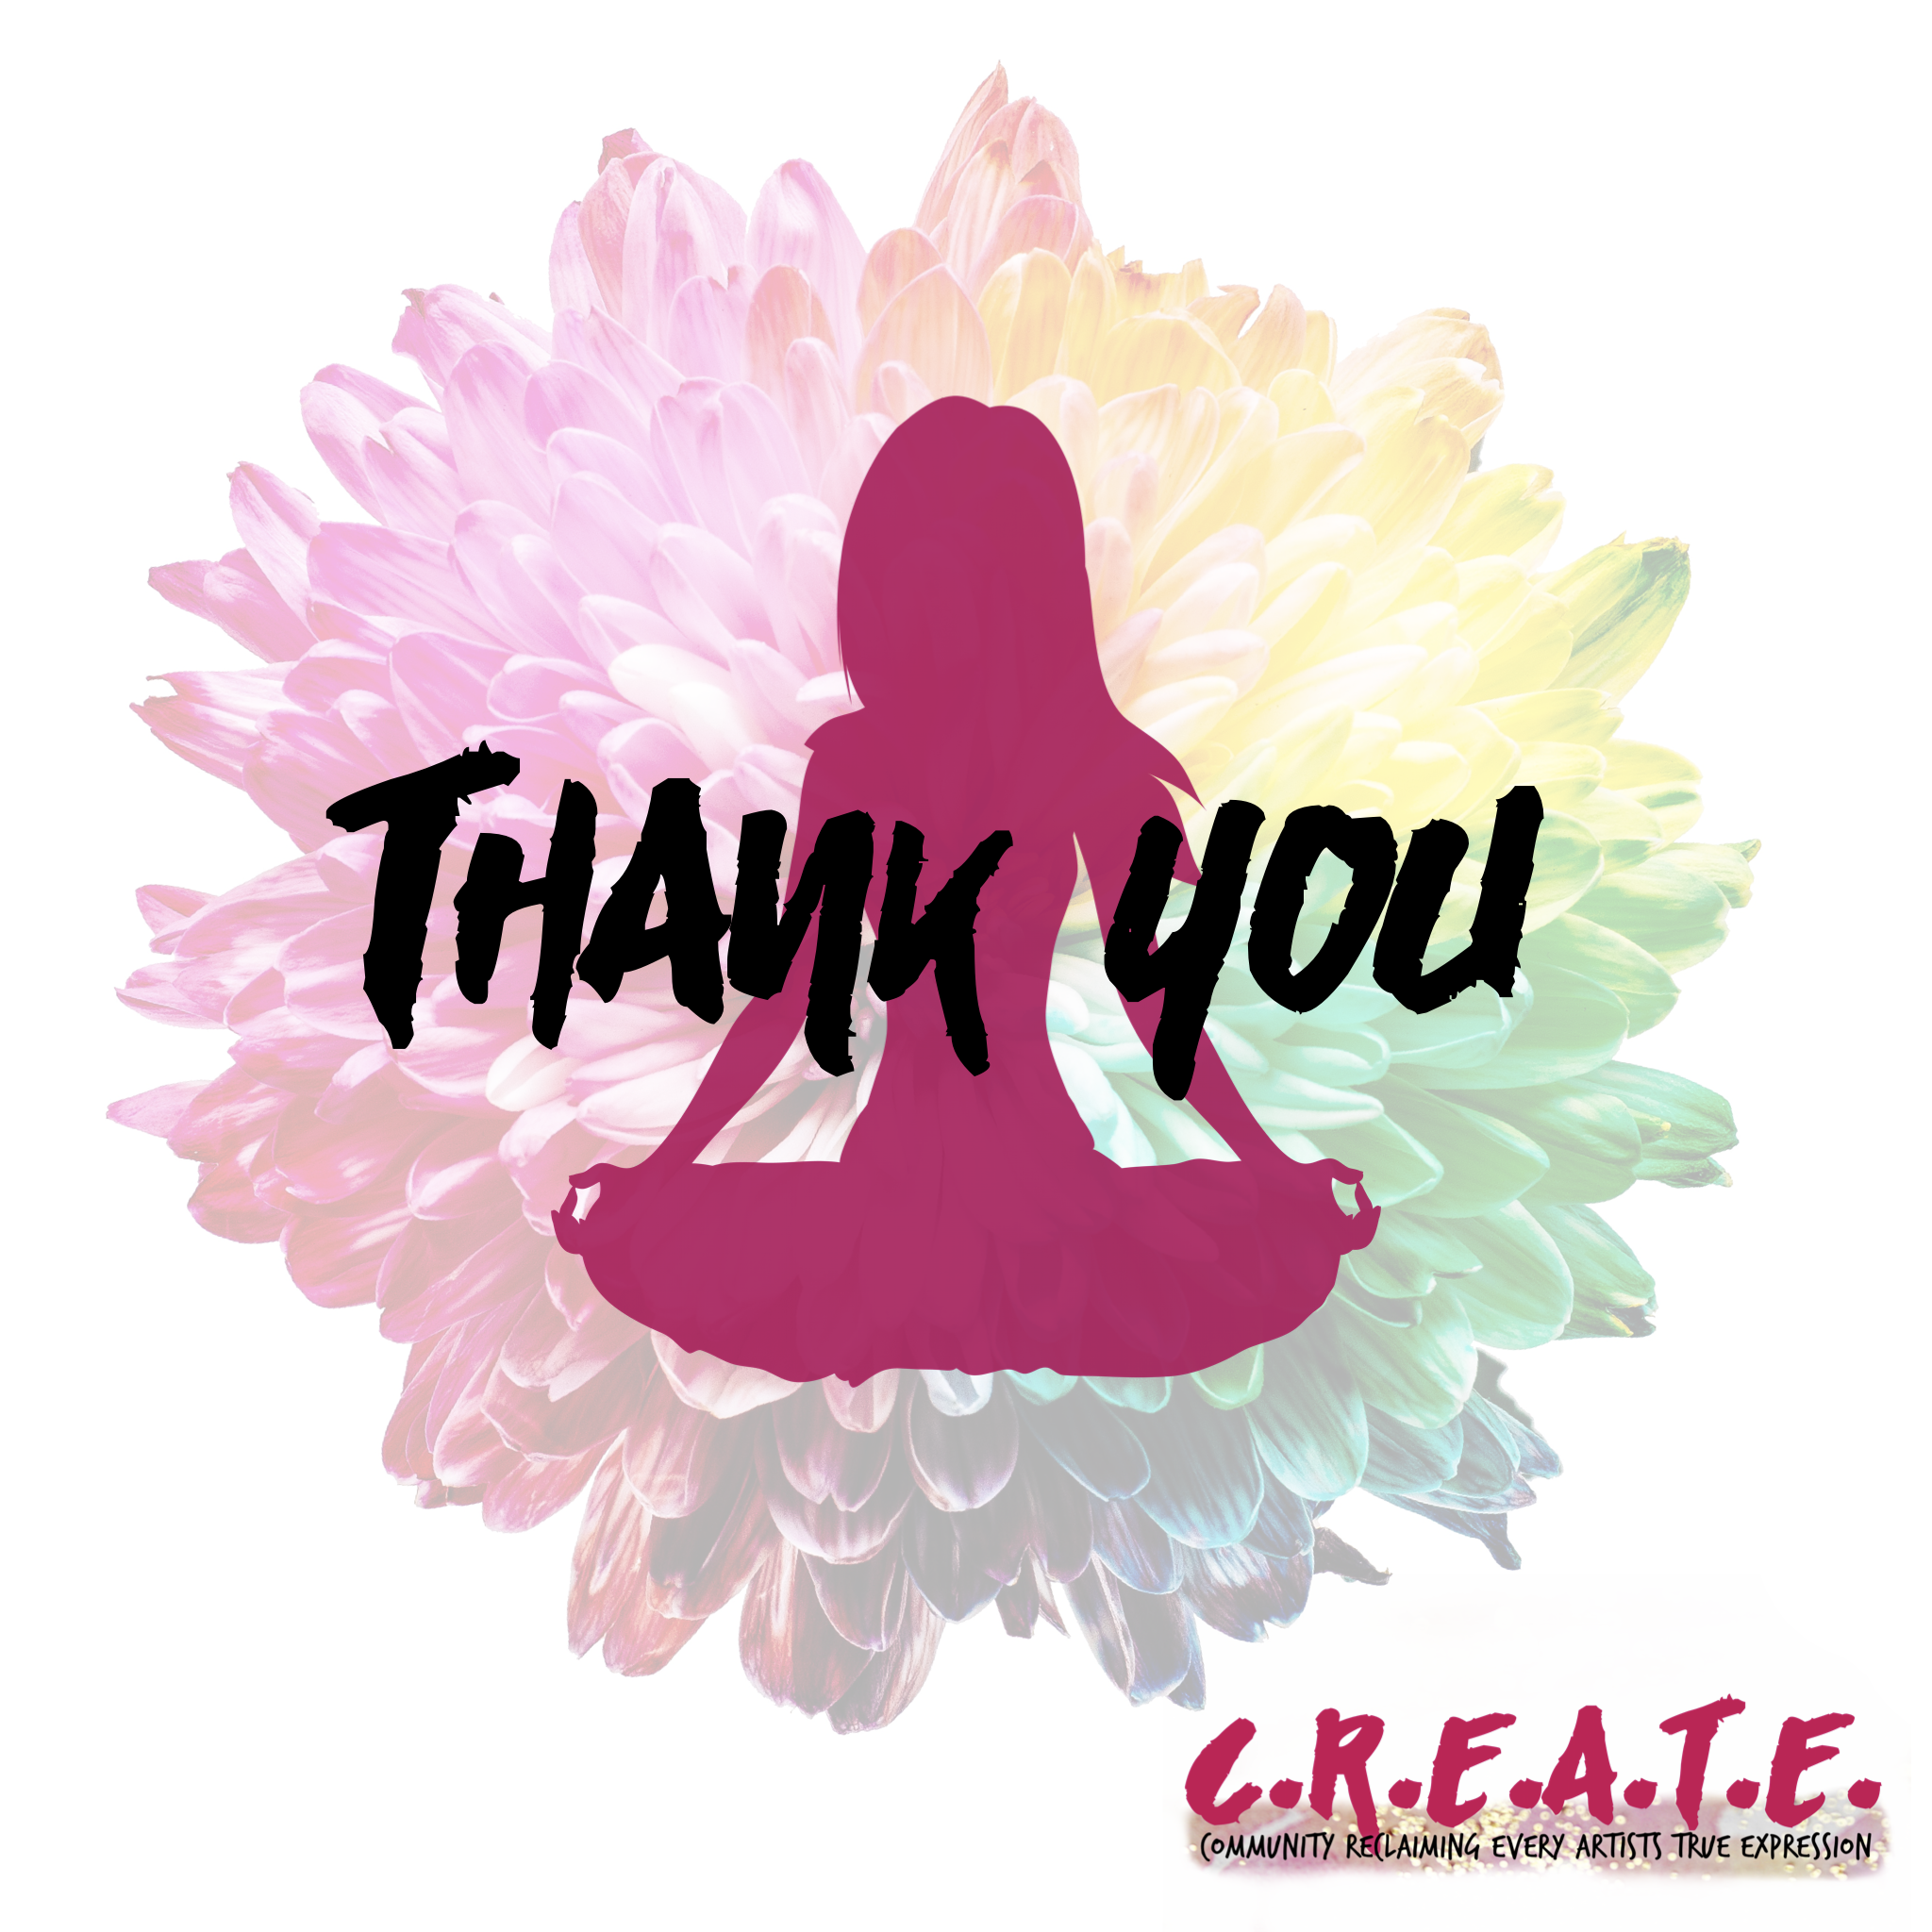 Thank You - $1.99 - Click Image To Purchase!